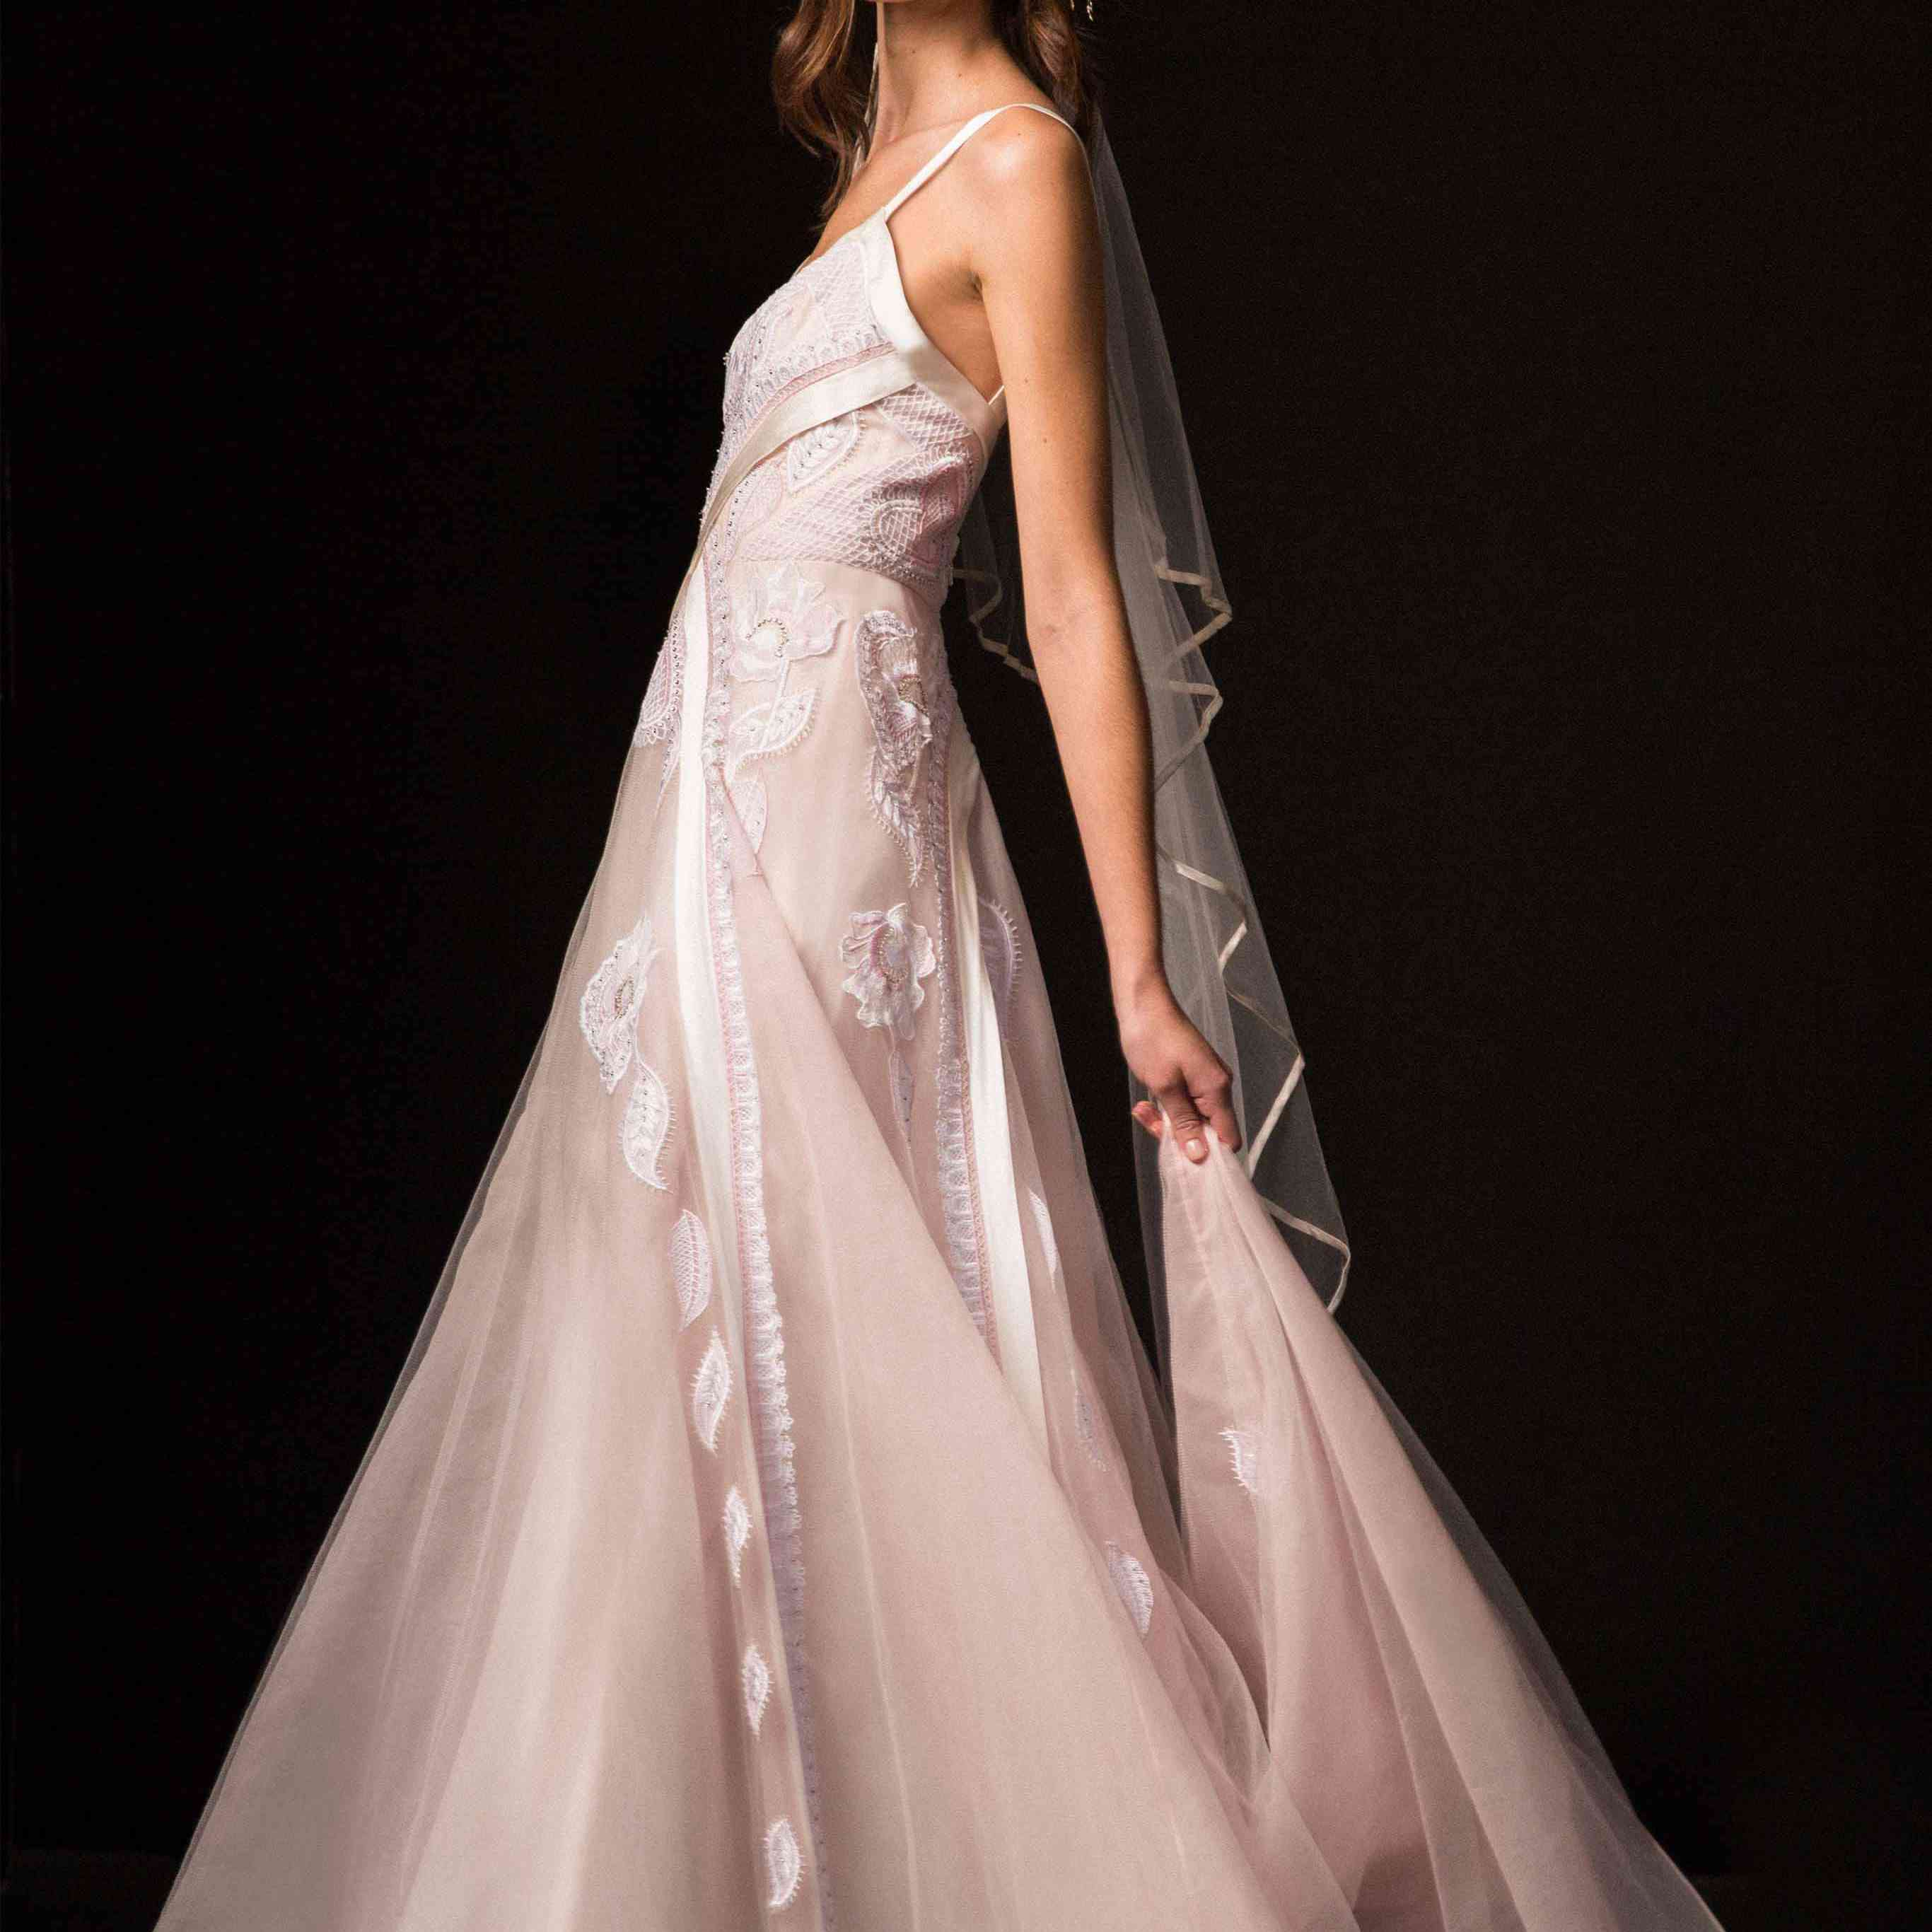 Model in blush pink tulle gown with flower and heart lattices